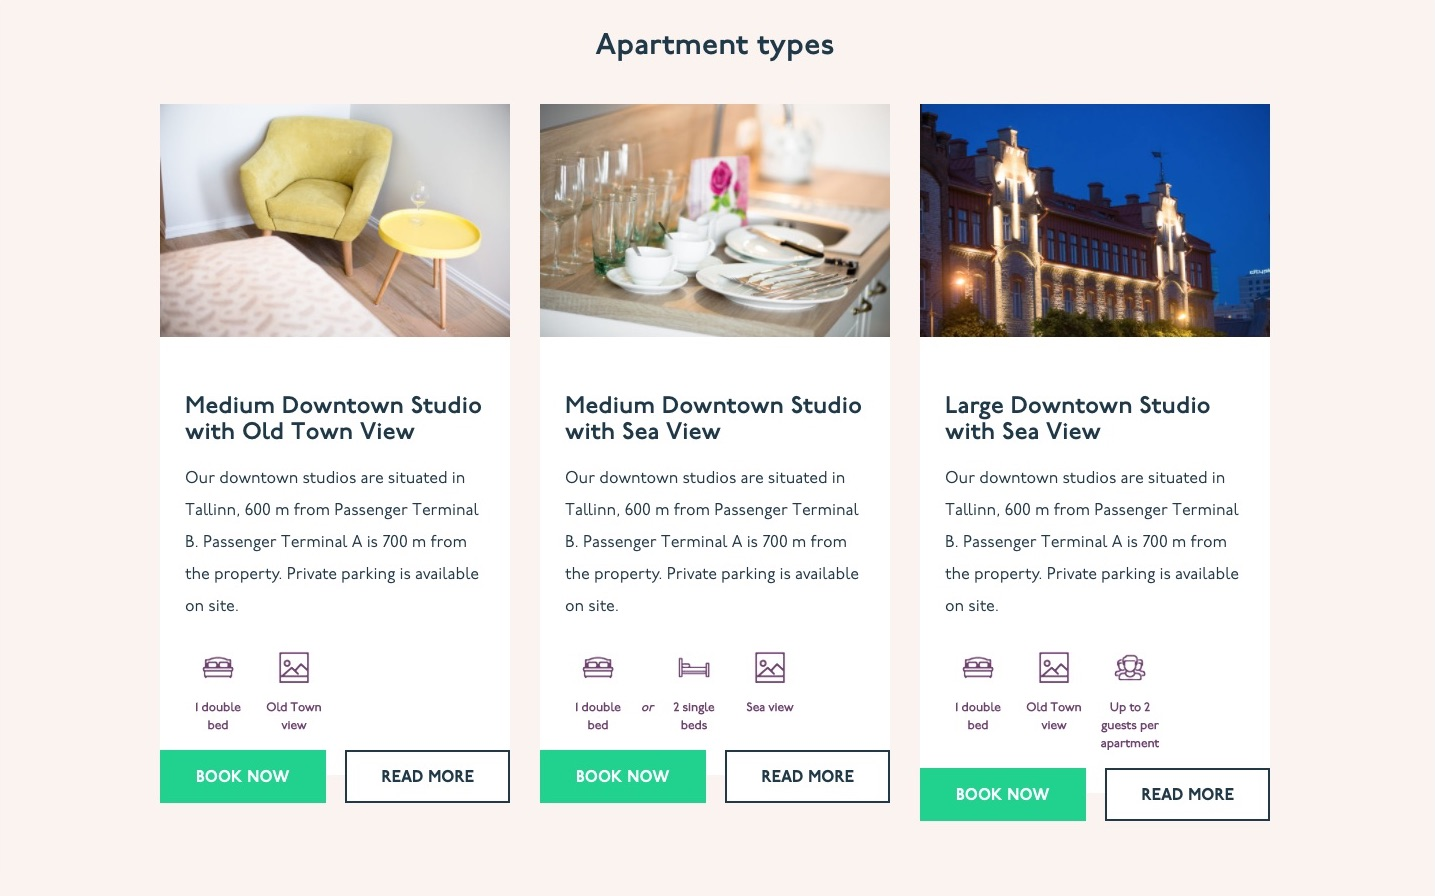 apple_apartments_types